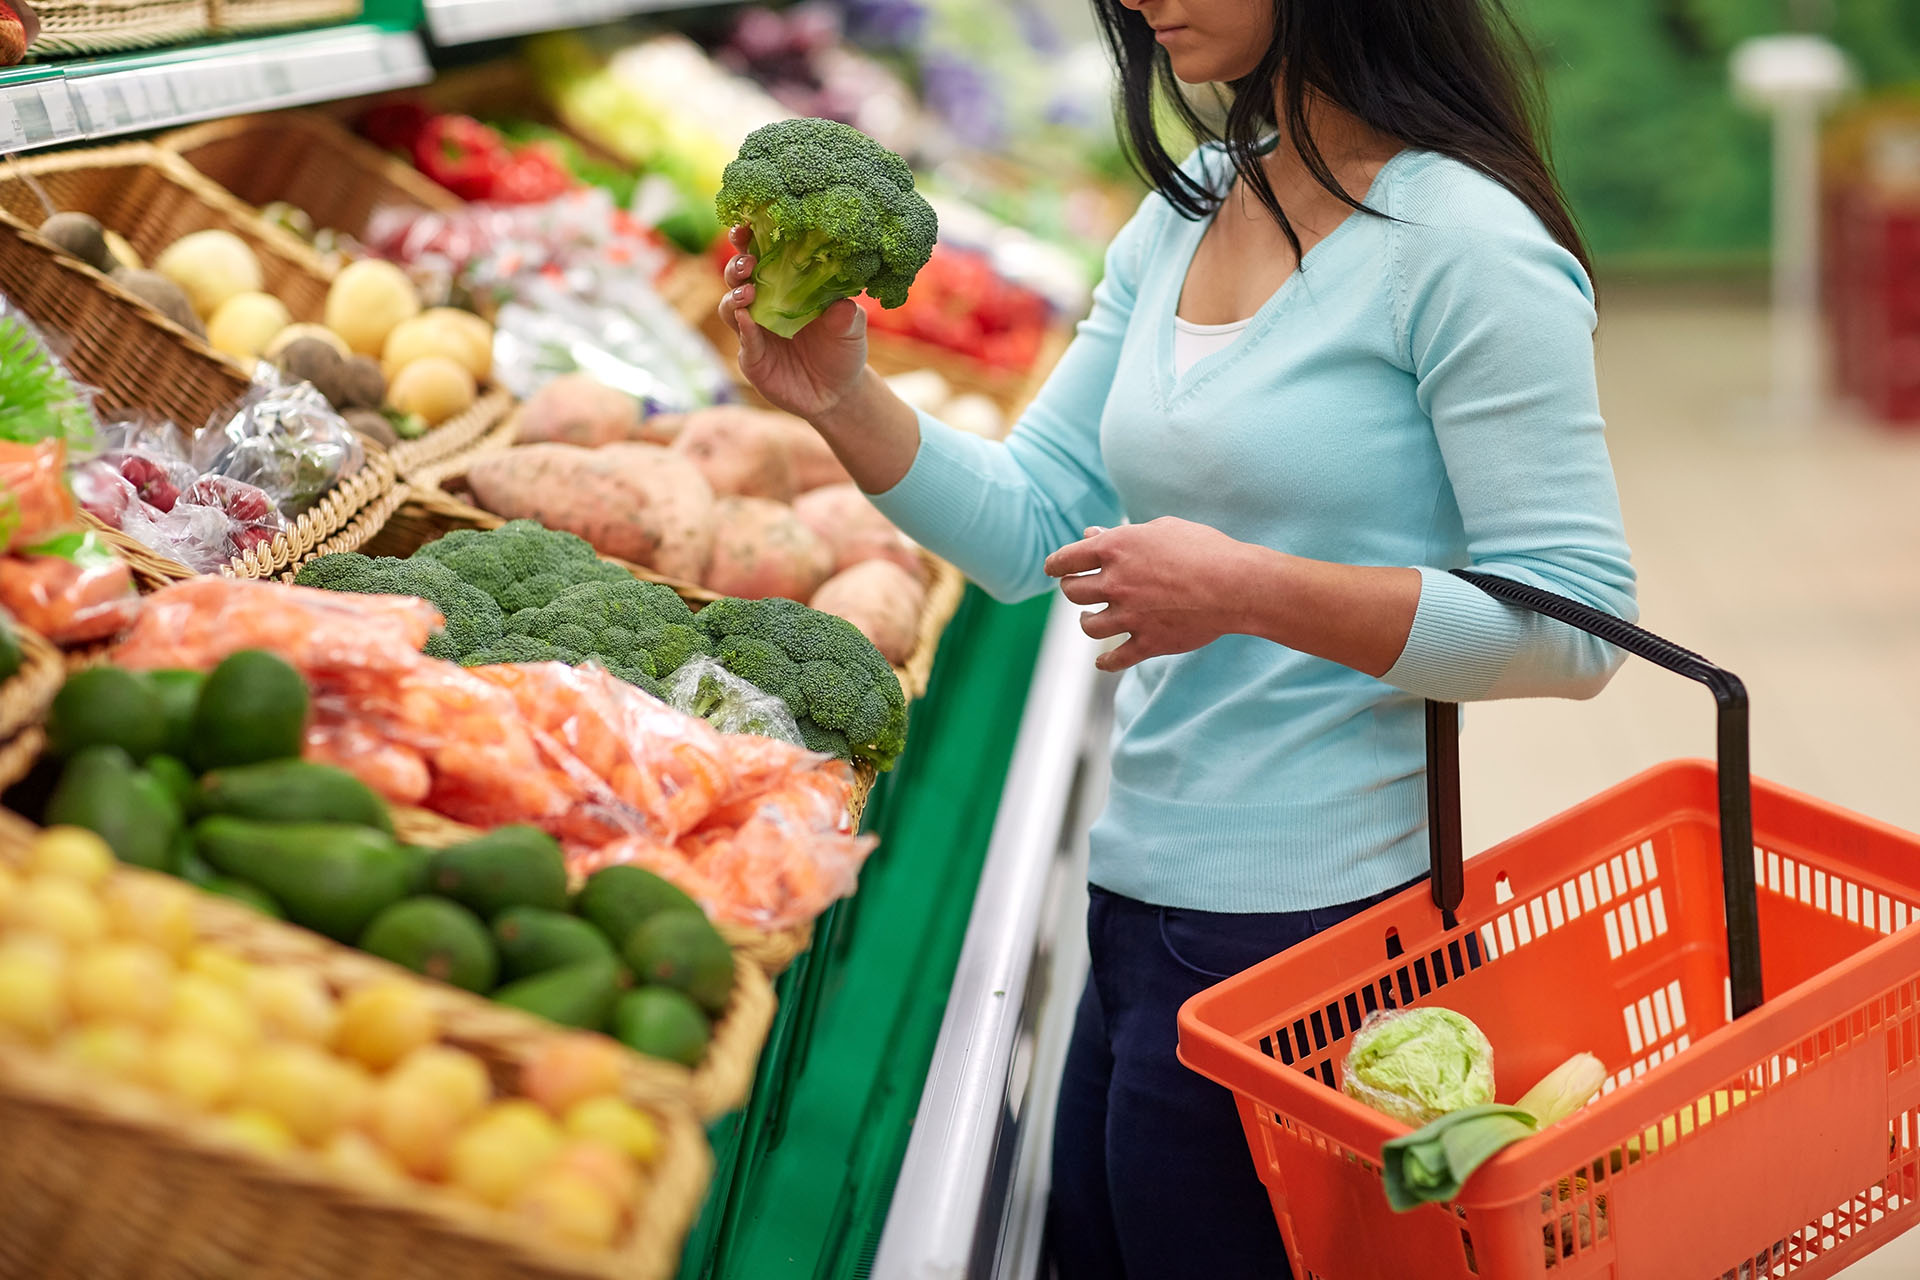 Island Foods offers refrigerated food distribution services